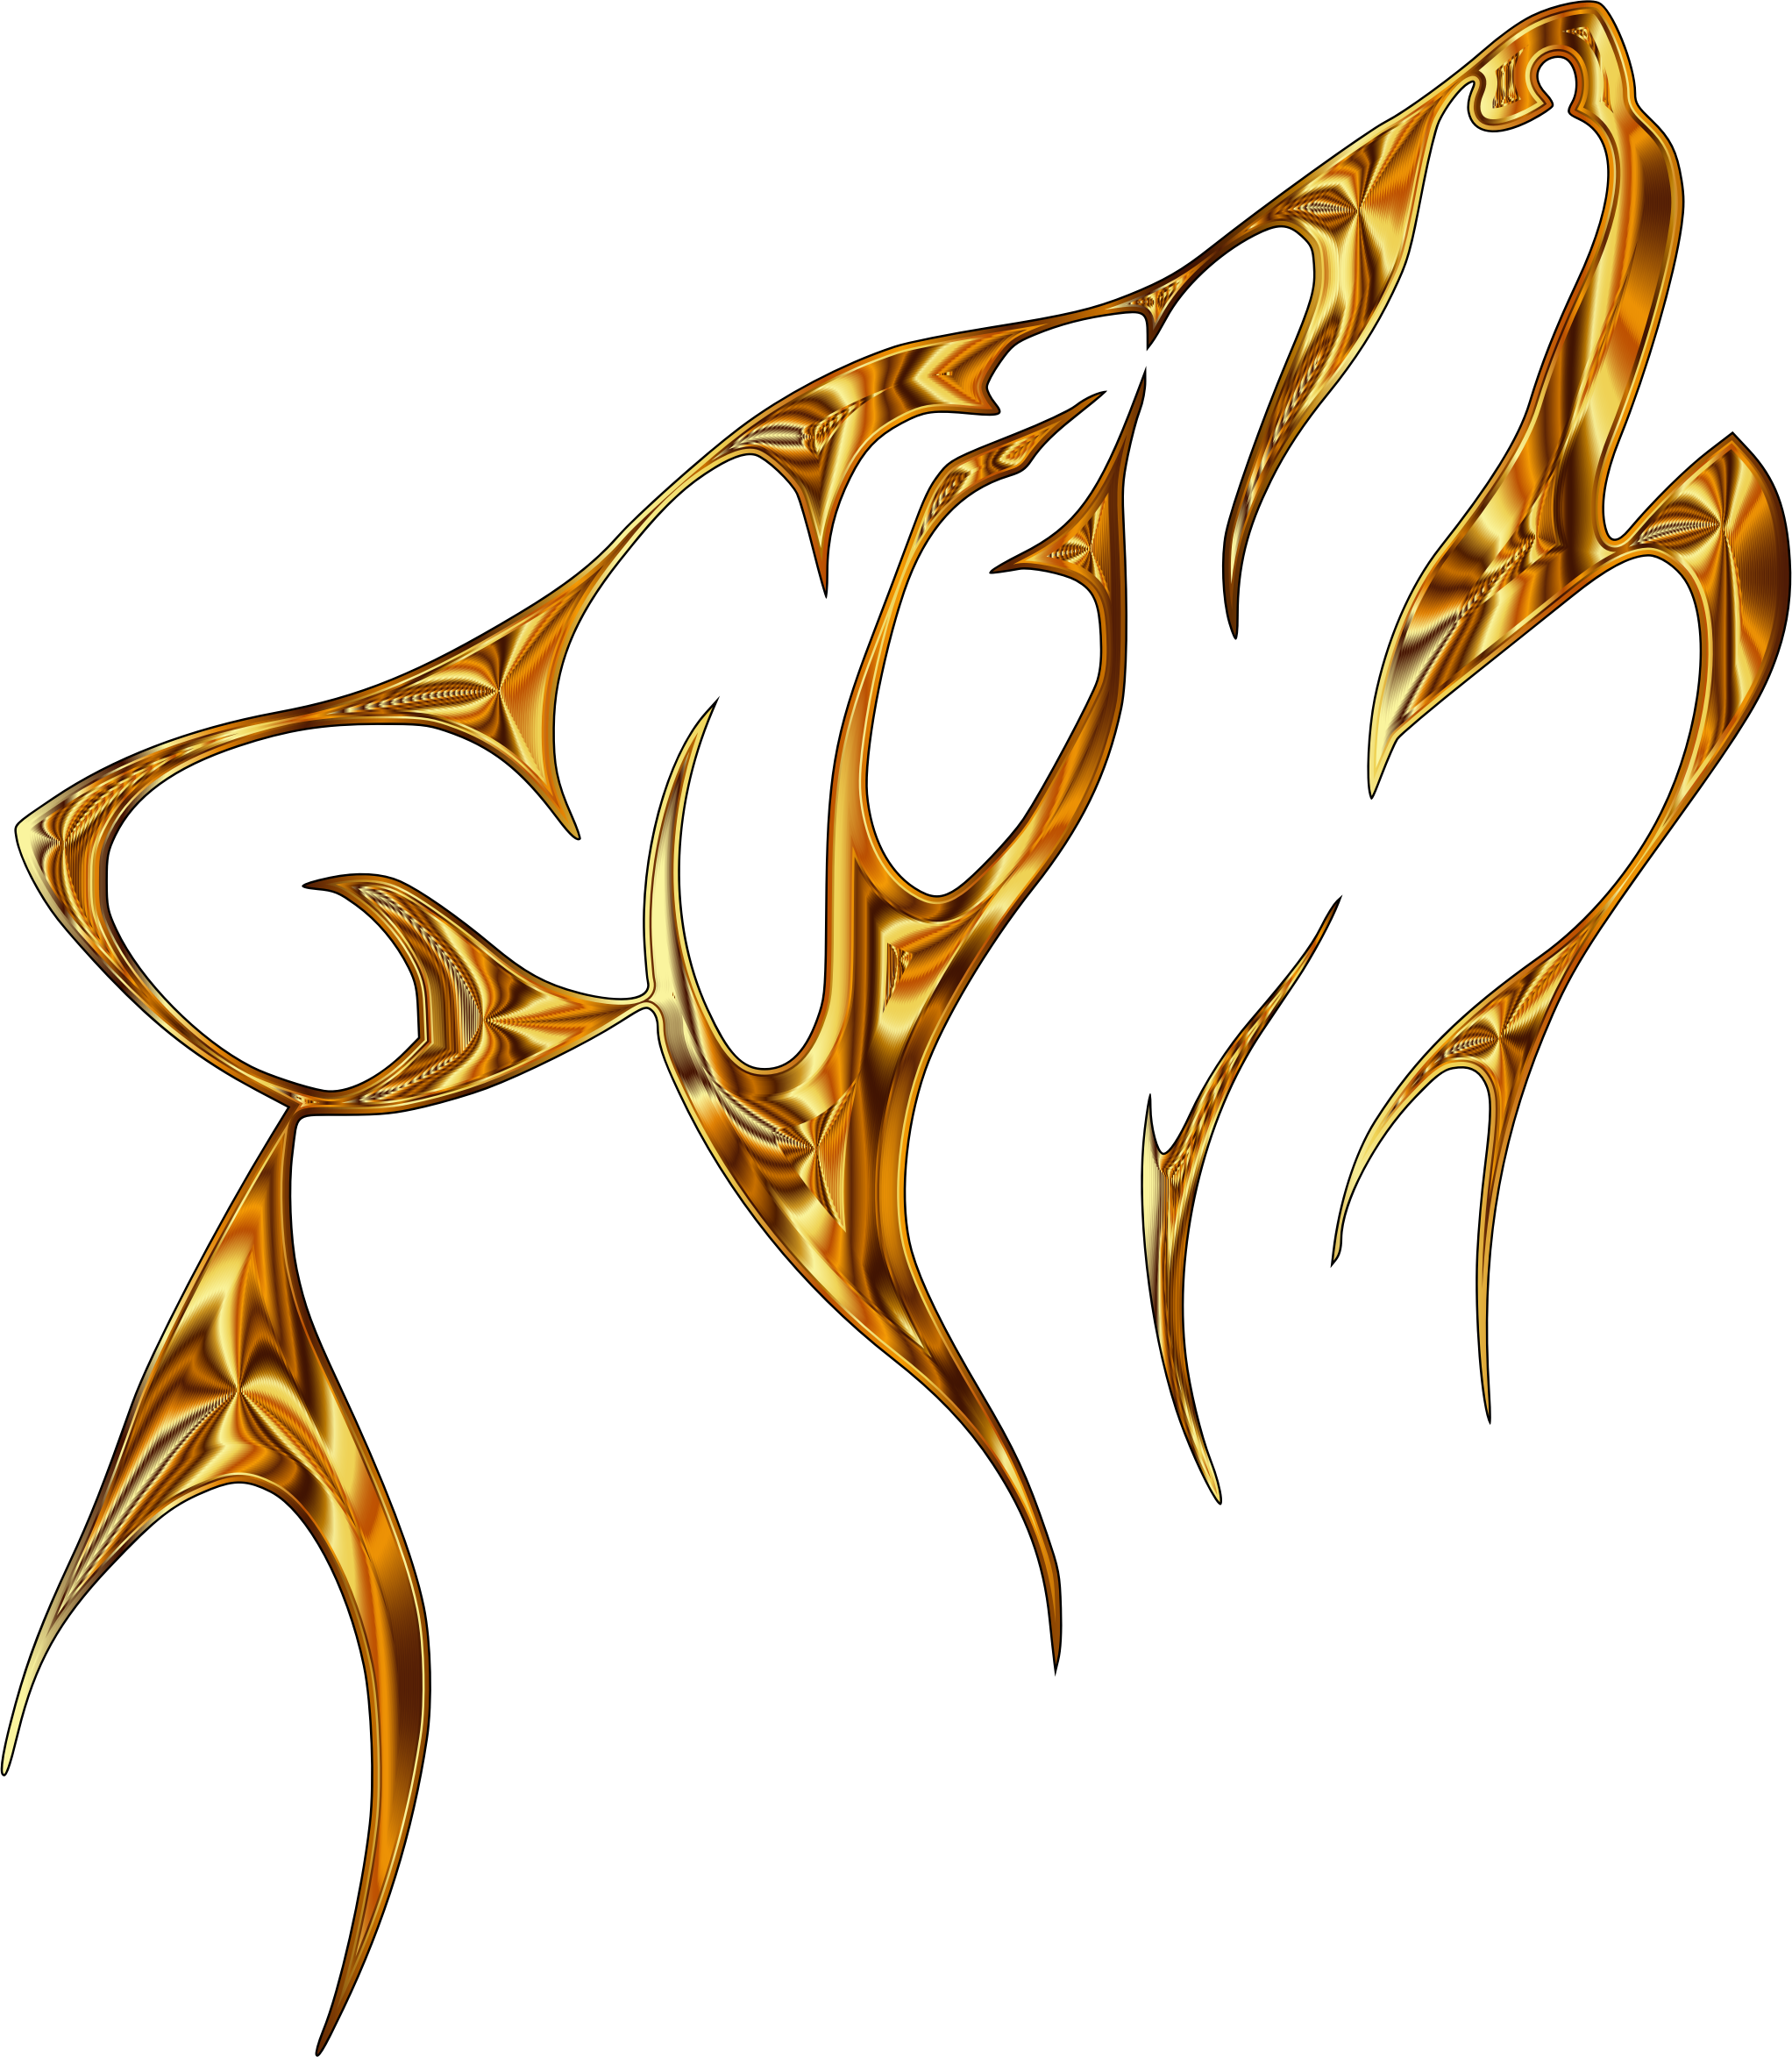 Golden Ember Tribal Wolf No Background by GDJ